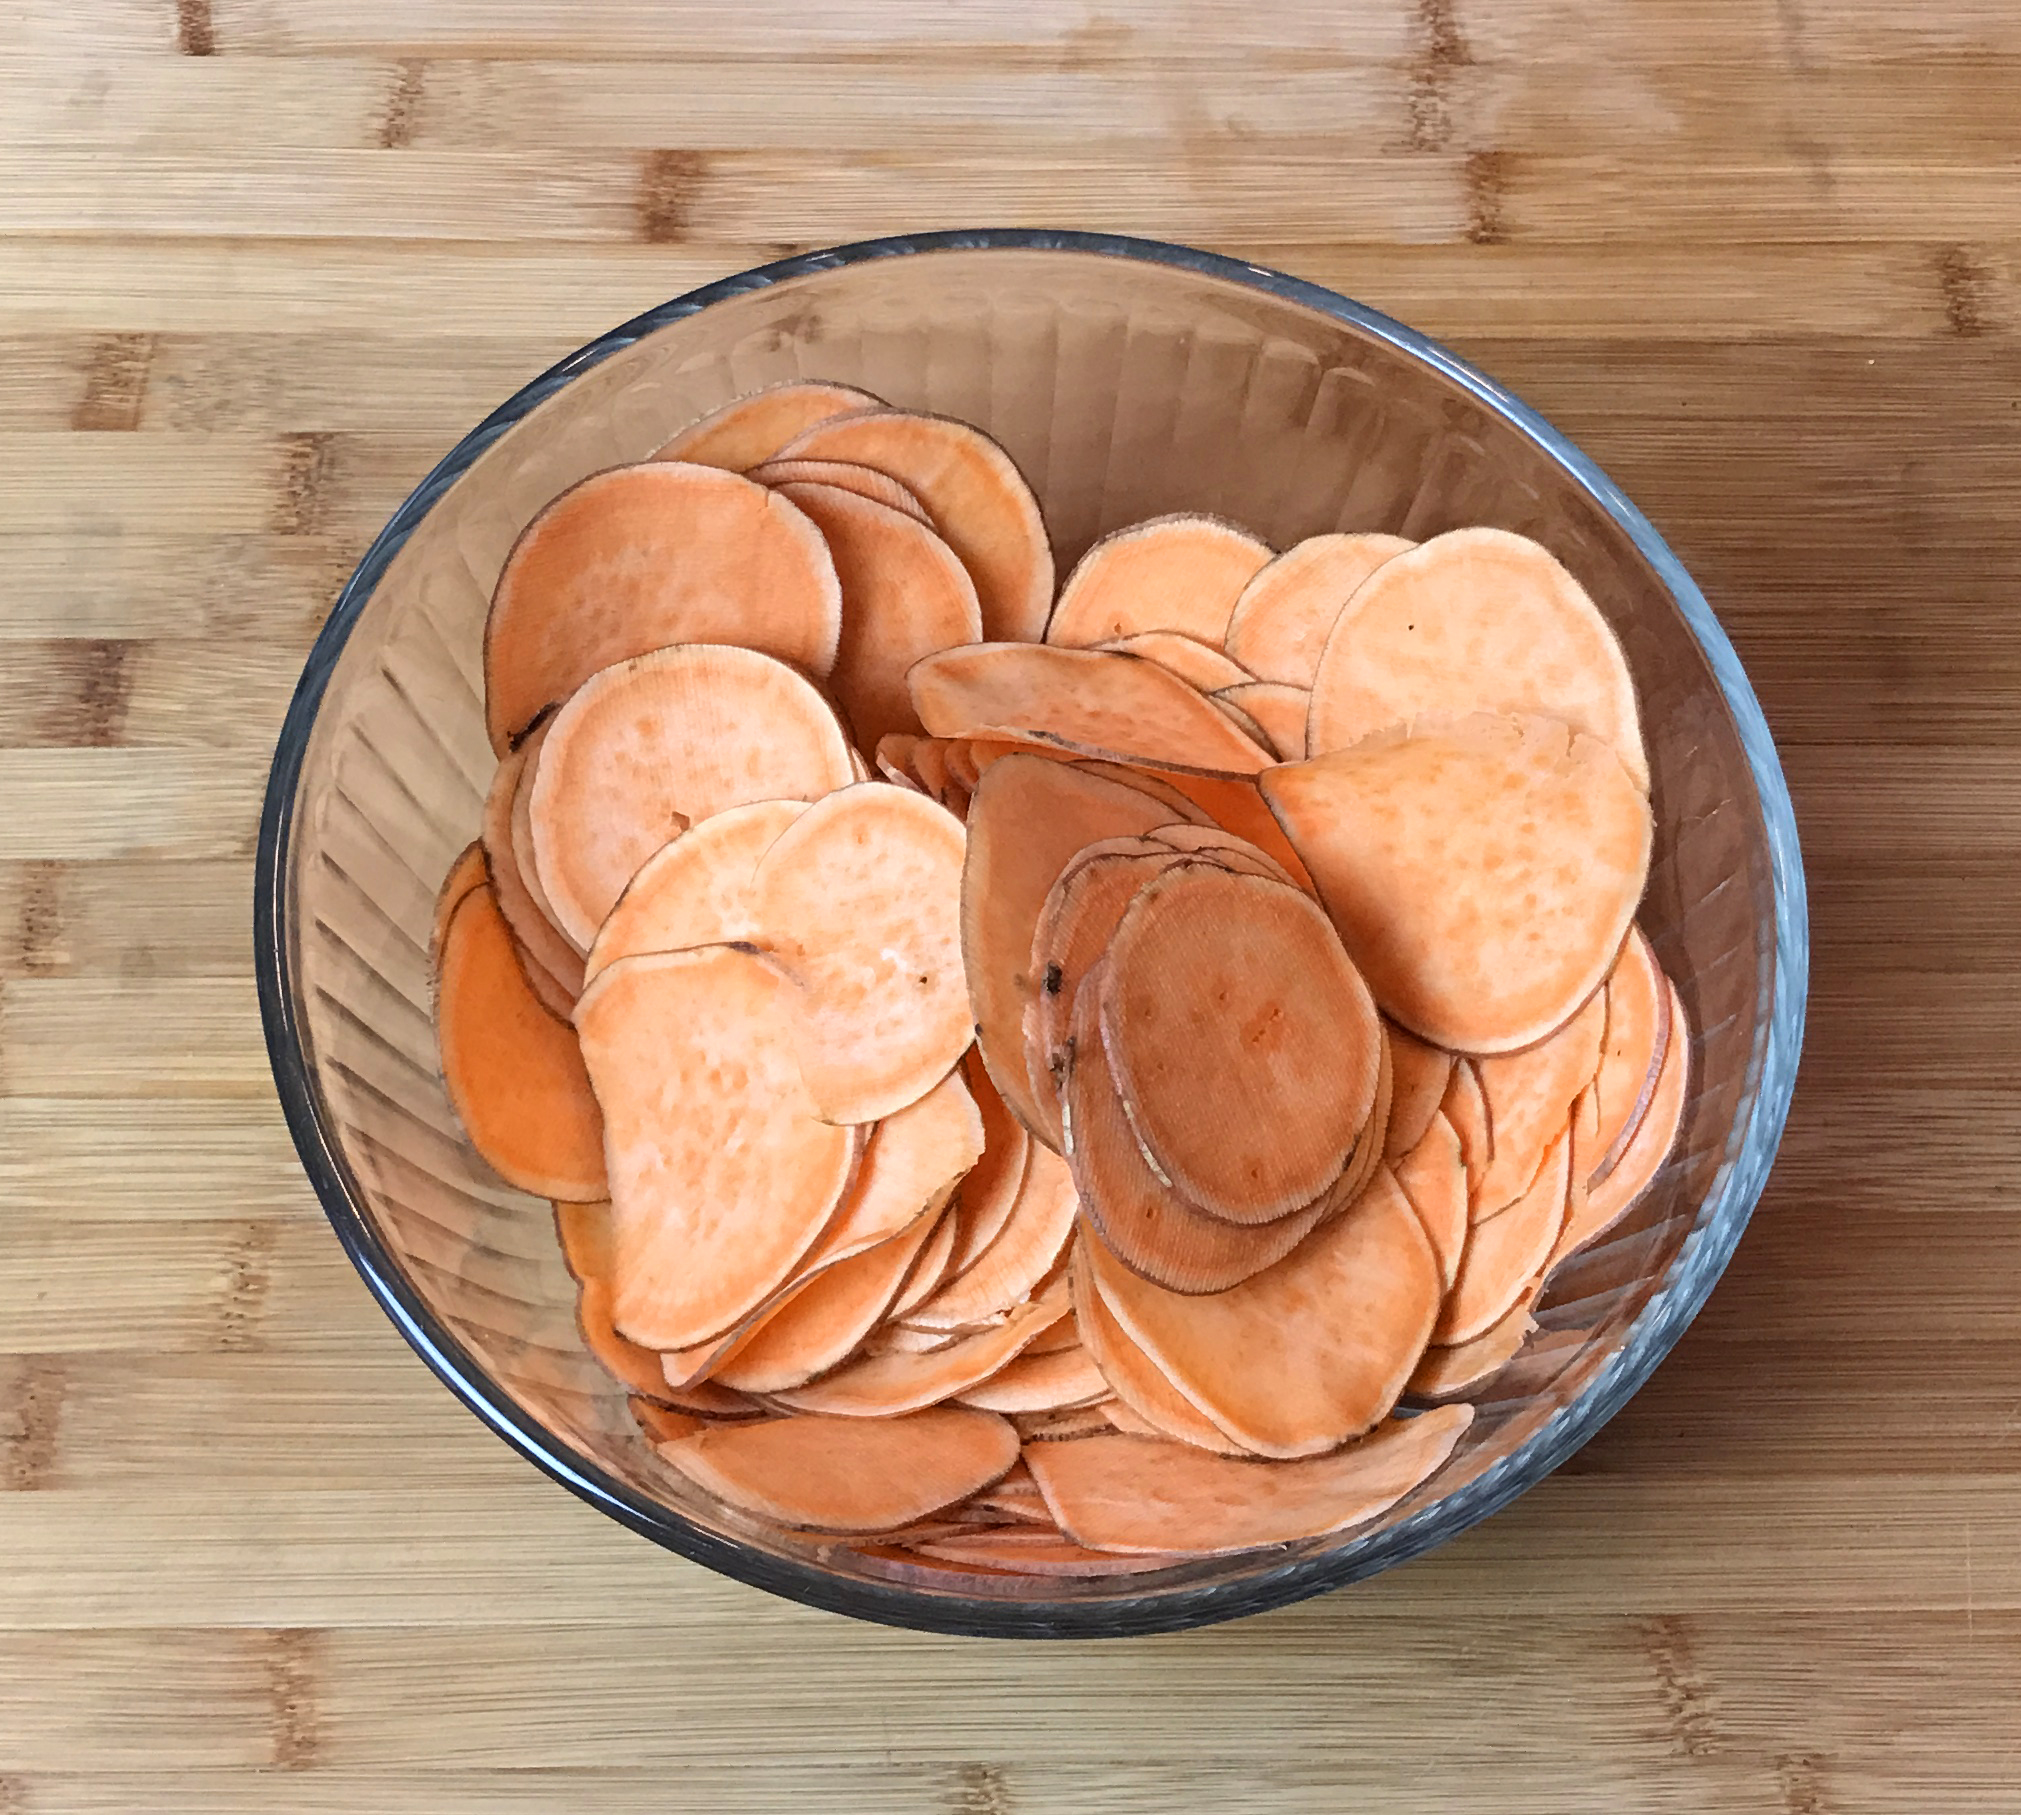 KitchAnnette Spicy Sweet Potato Roses raw slices